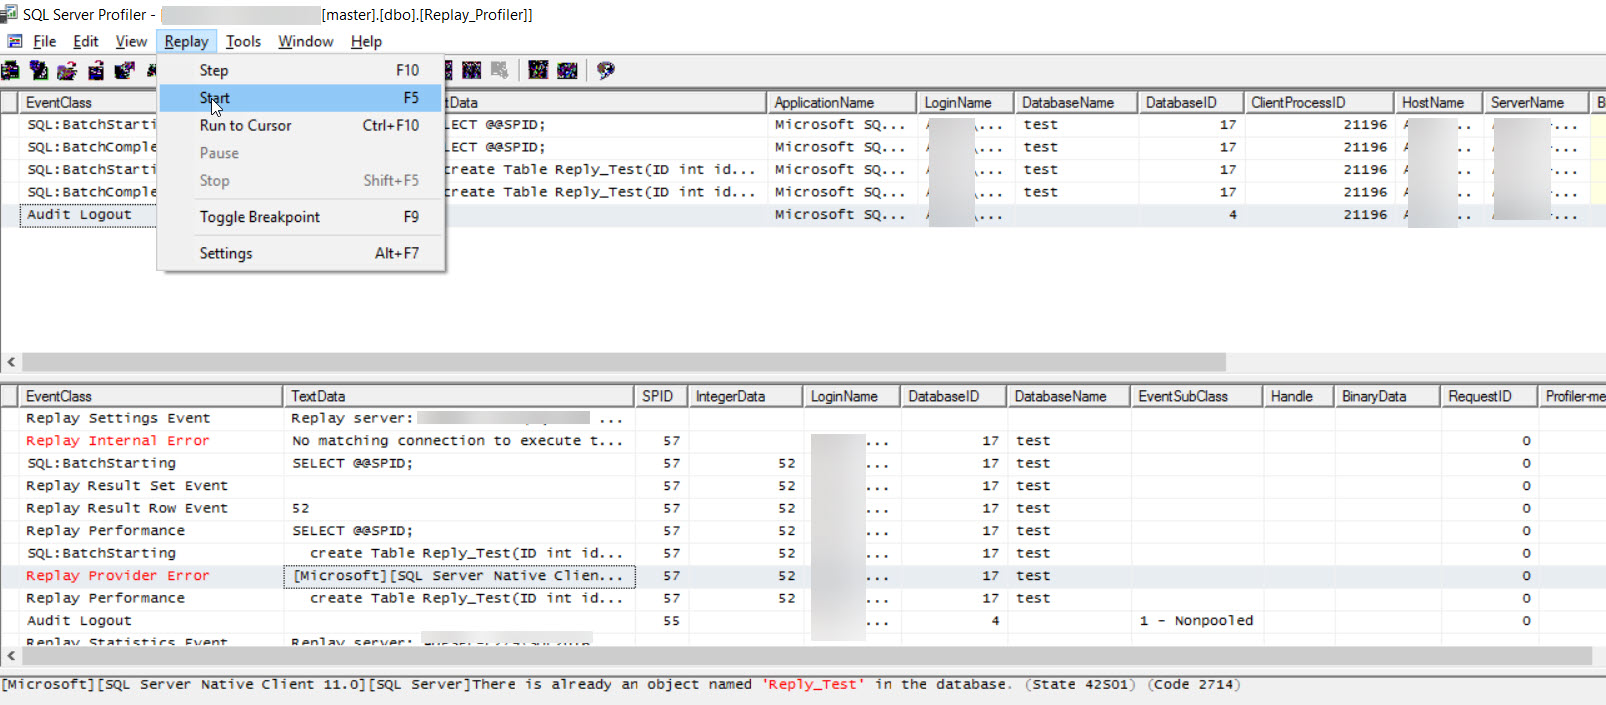 How to Replay a SQL Server Profiler trace in SQL Server